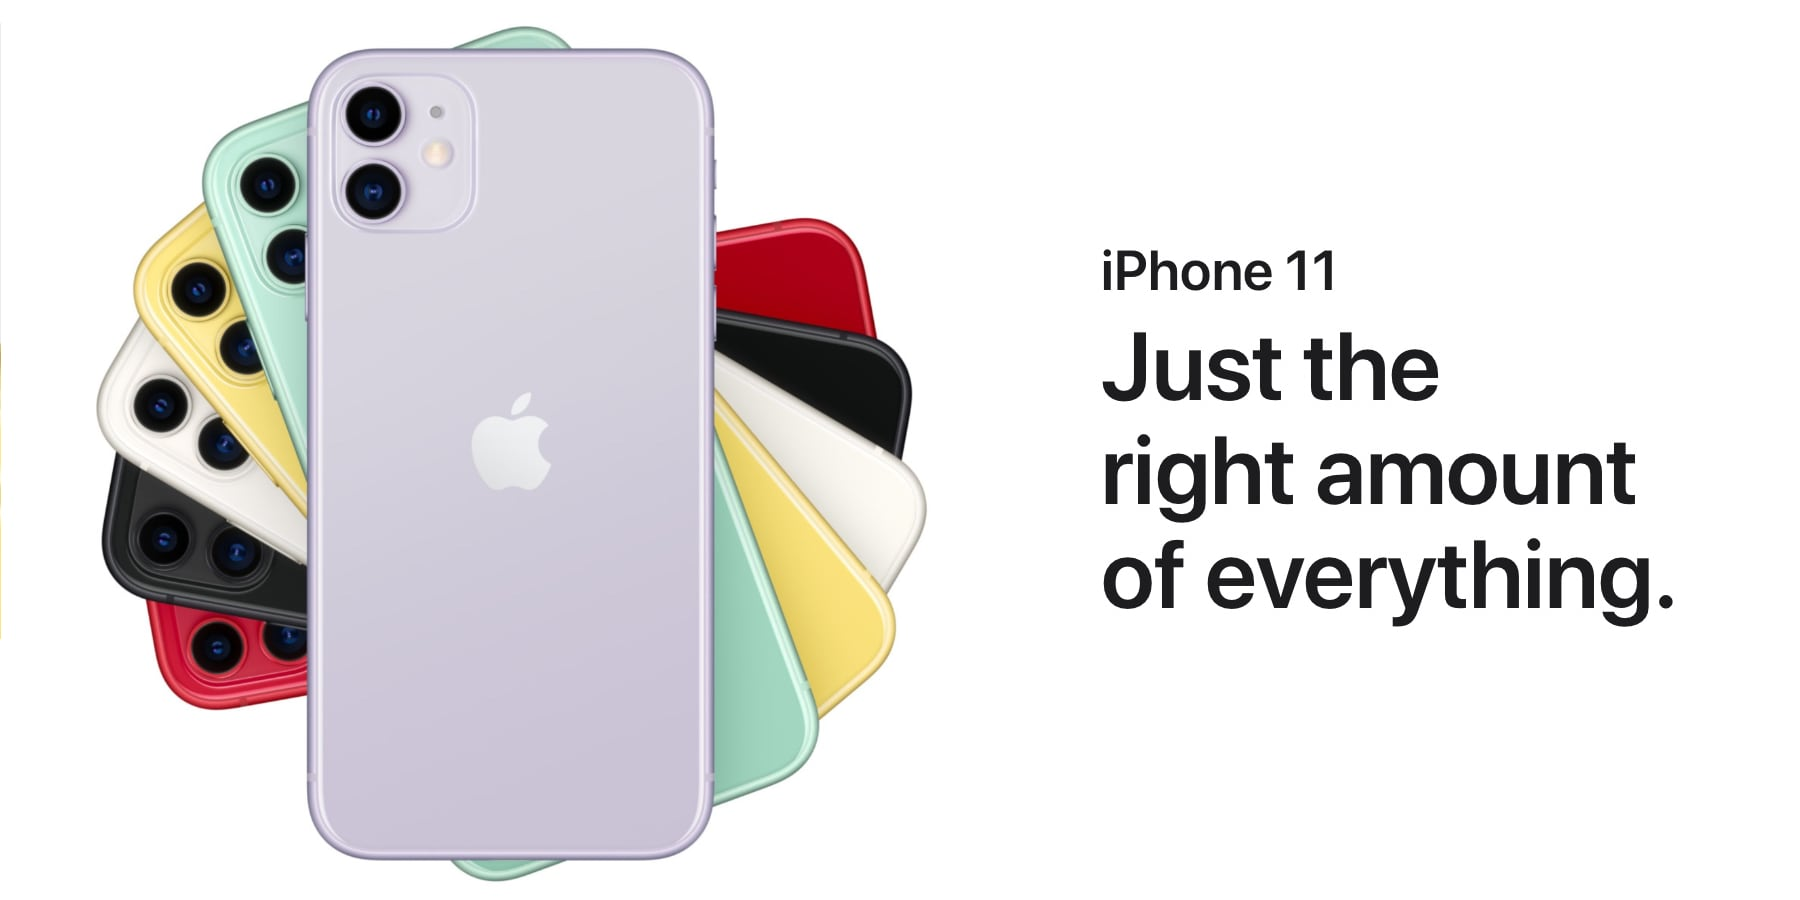 Apple Cuts Iphone Xr And Iphone 11 Prices By 100 Kills Iphone 11 Pro Venturebeat